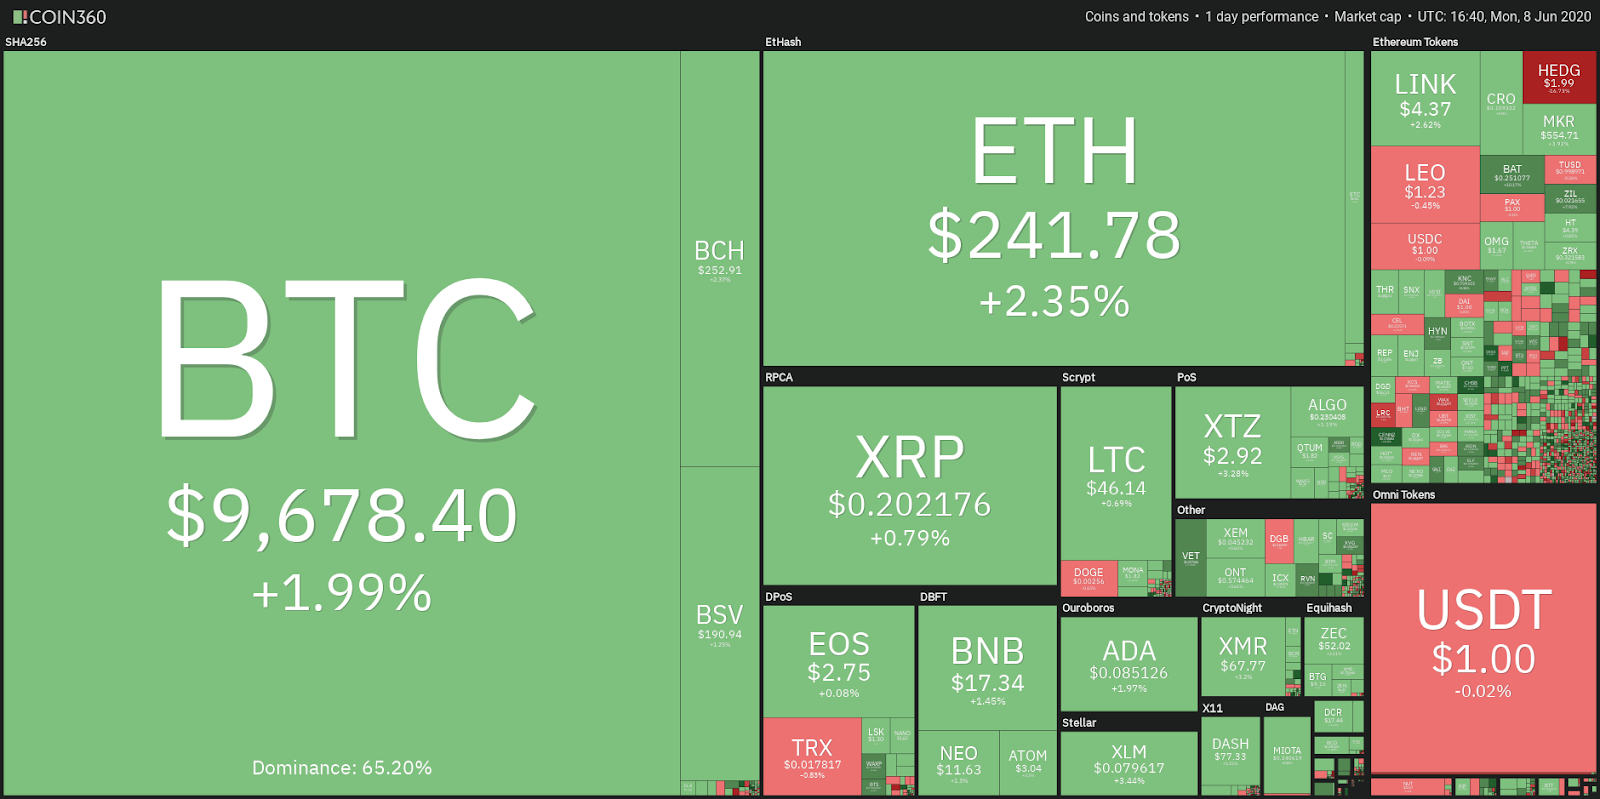 xrp cryptocurrency price